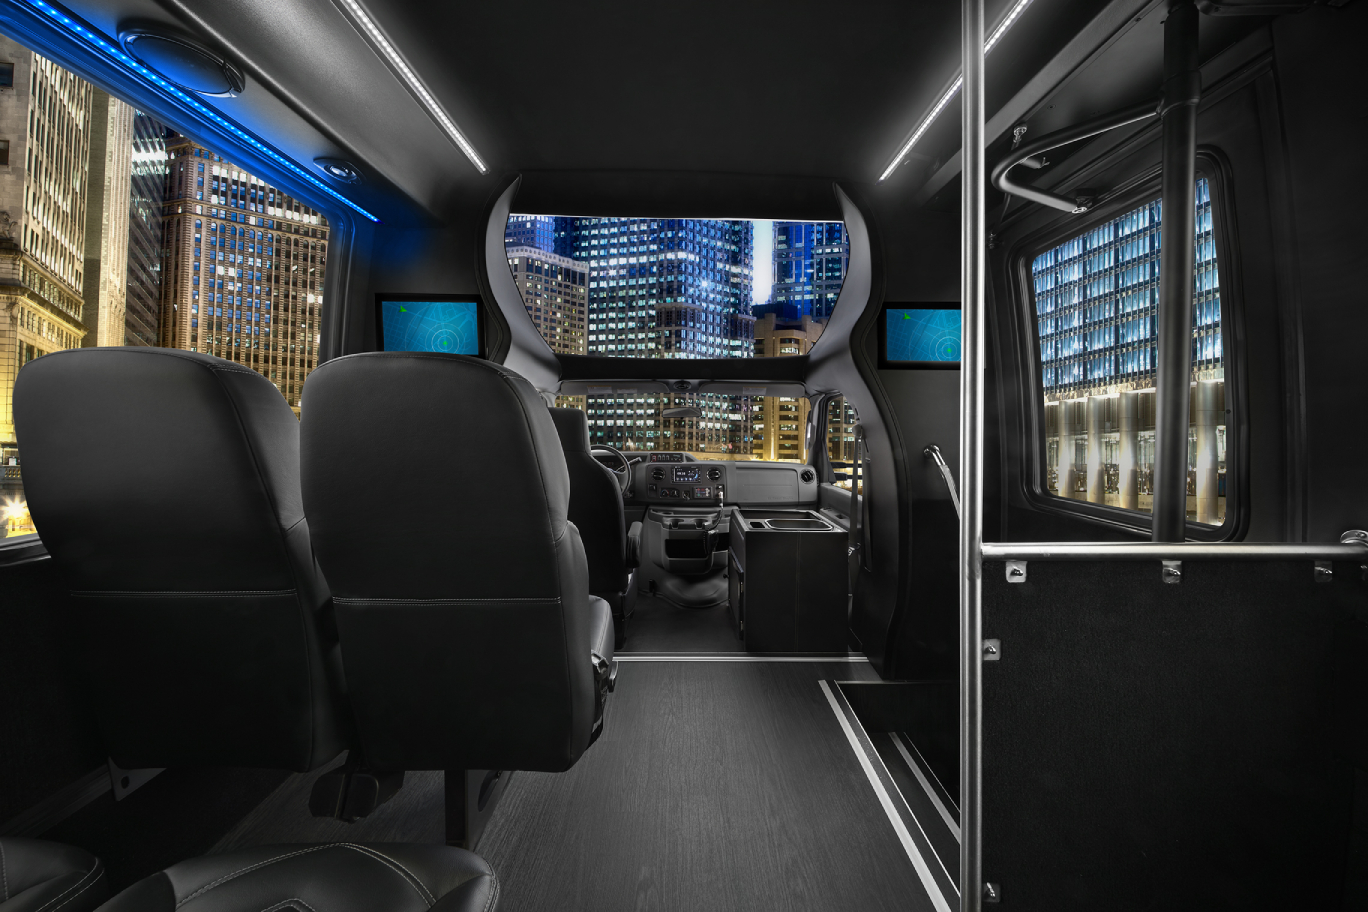 Your comfort. Your safety. Your shuttle.